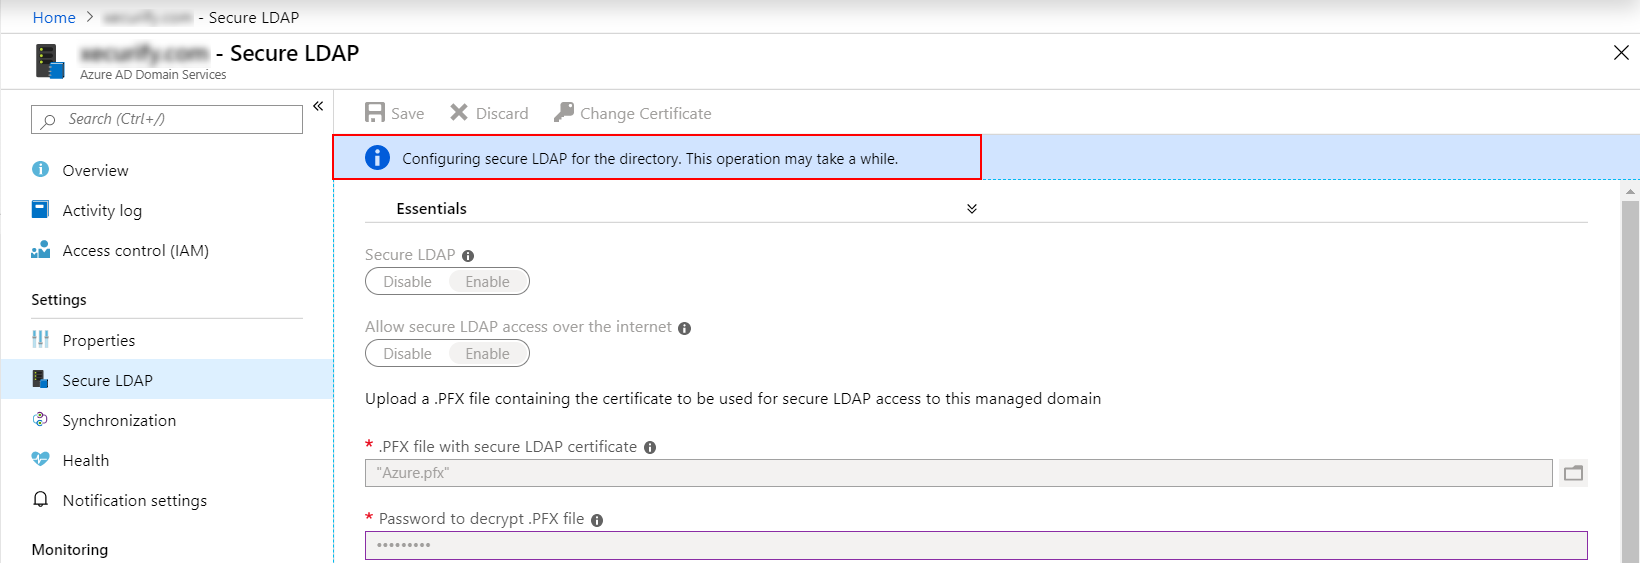 Azure AD Secure Ldap configured for the managed domain